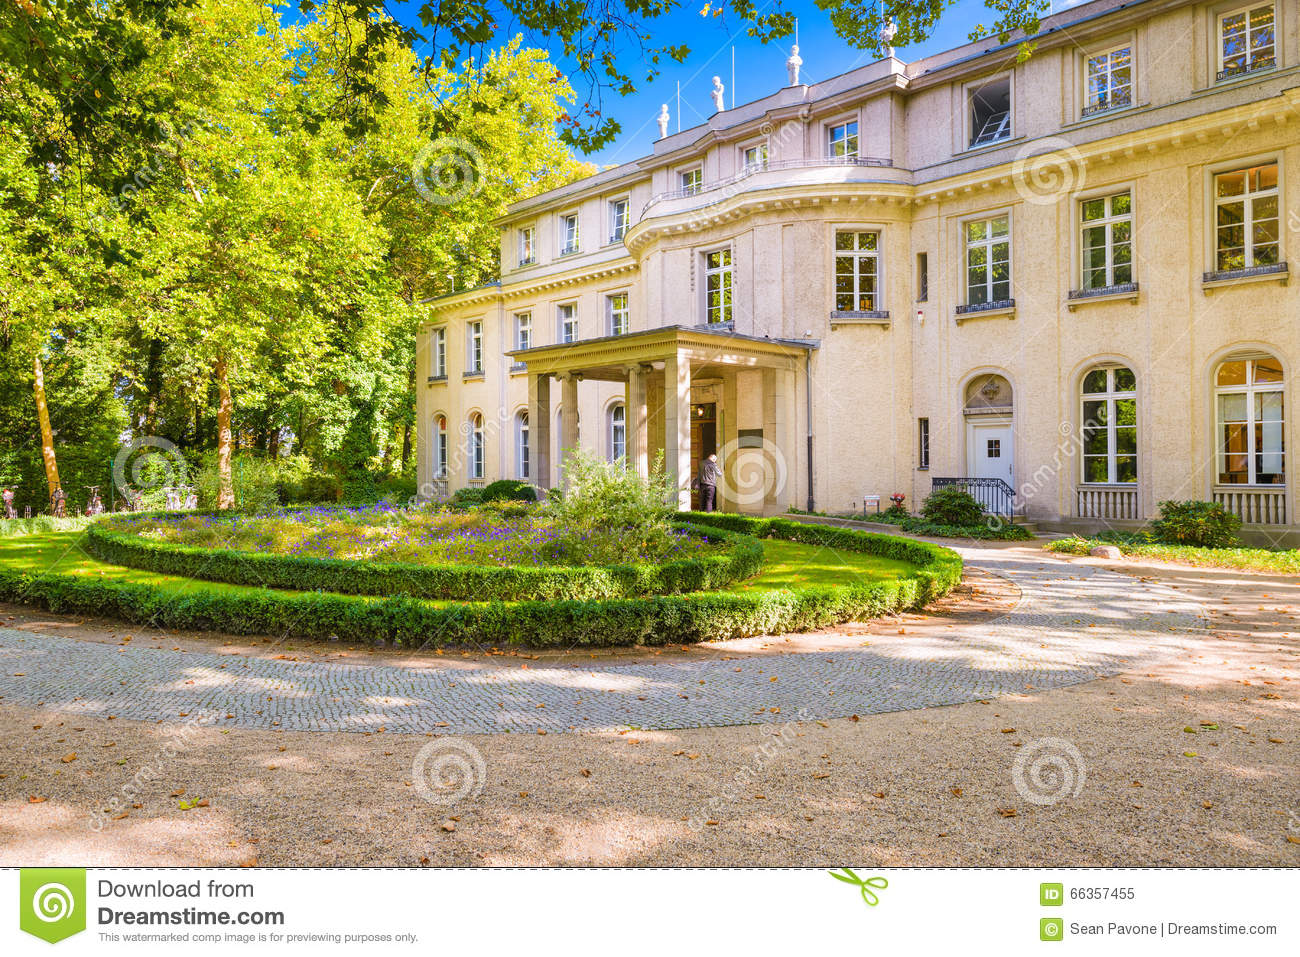 Wannsee House in Germany